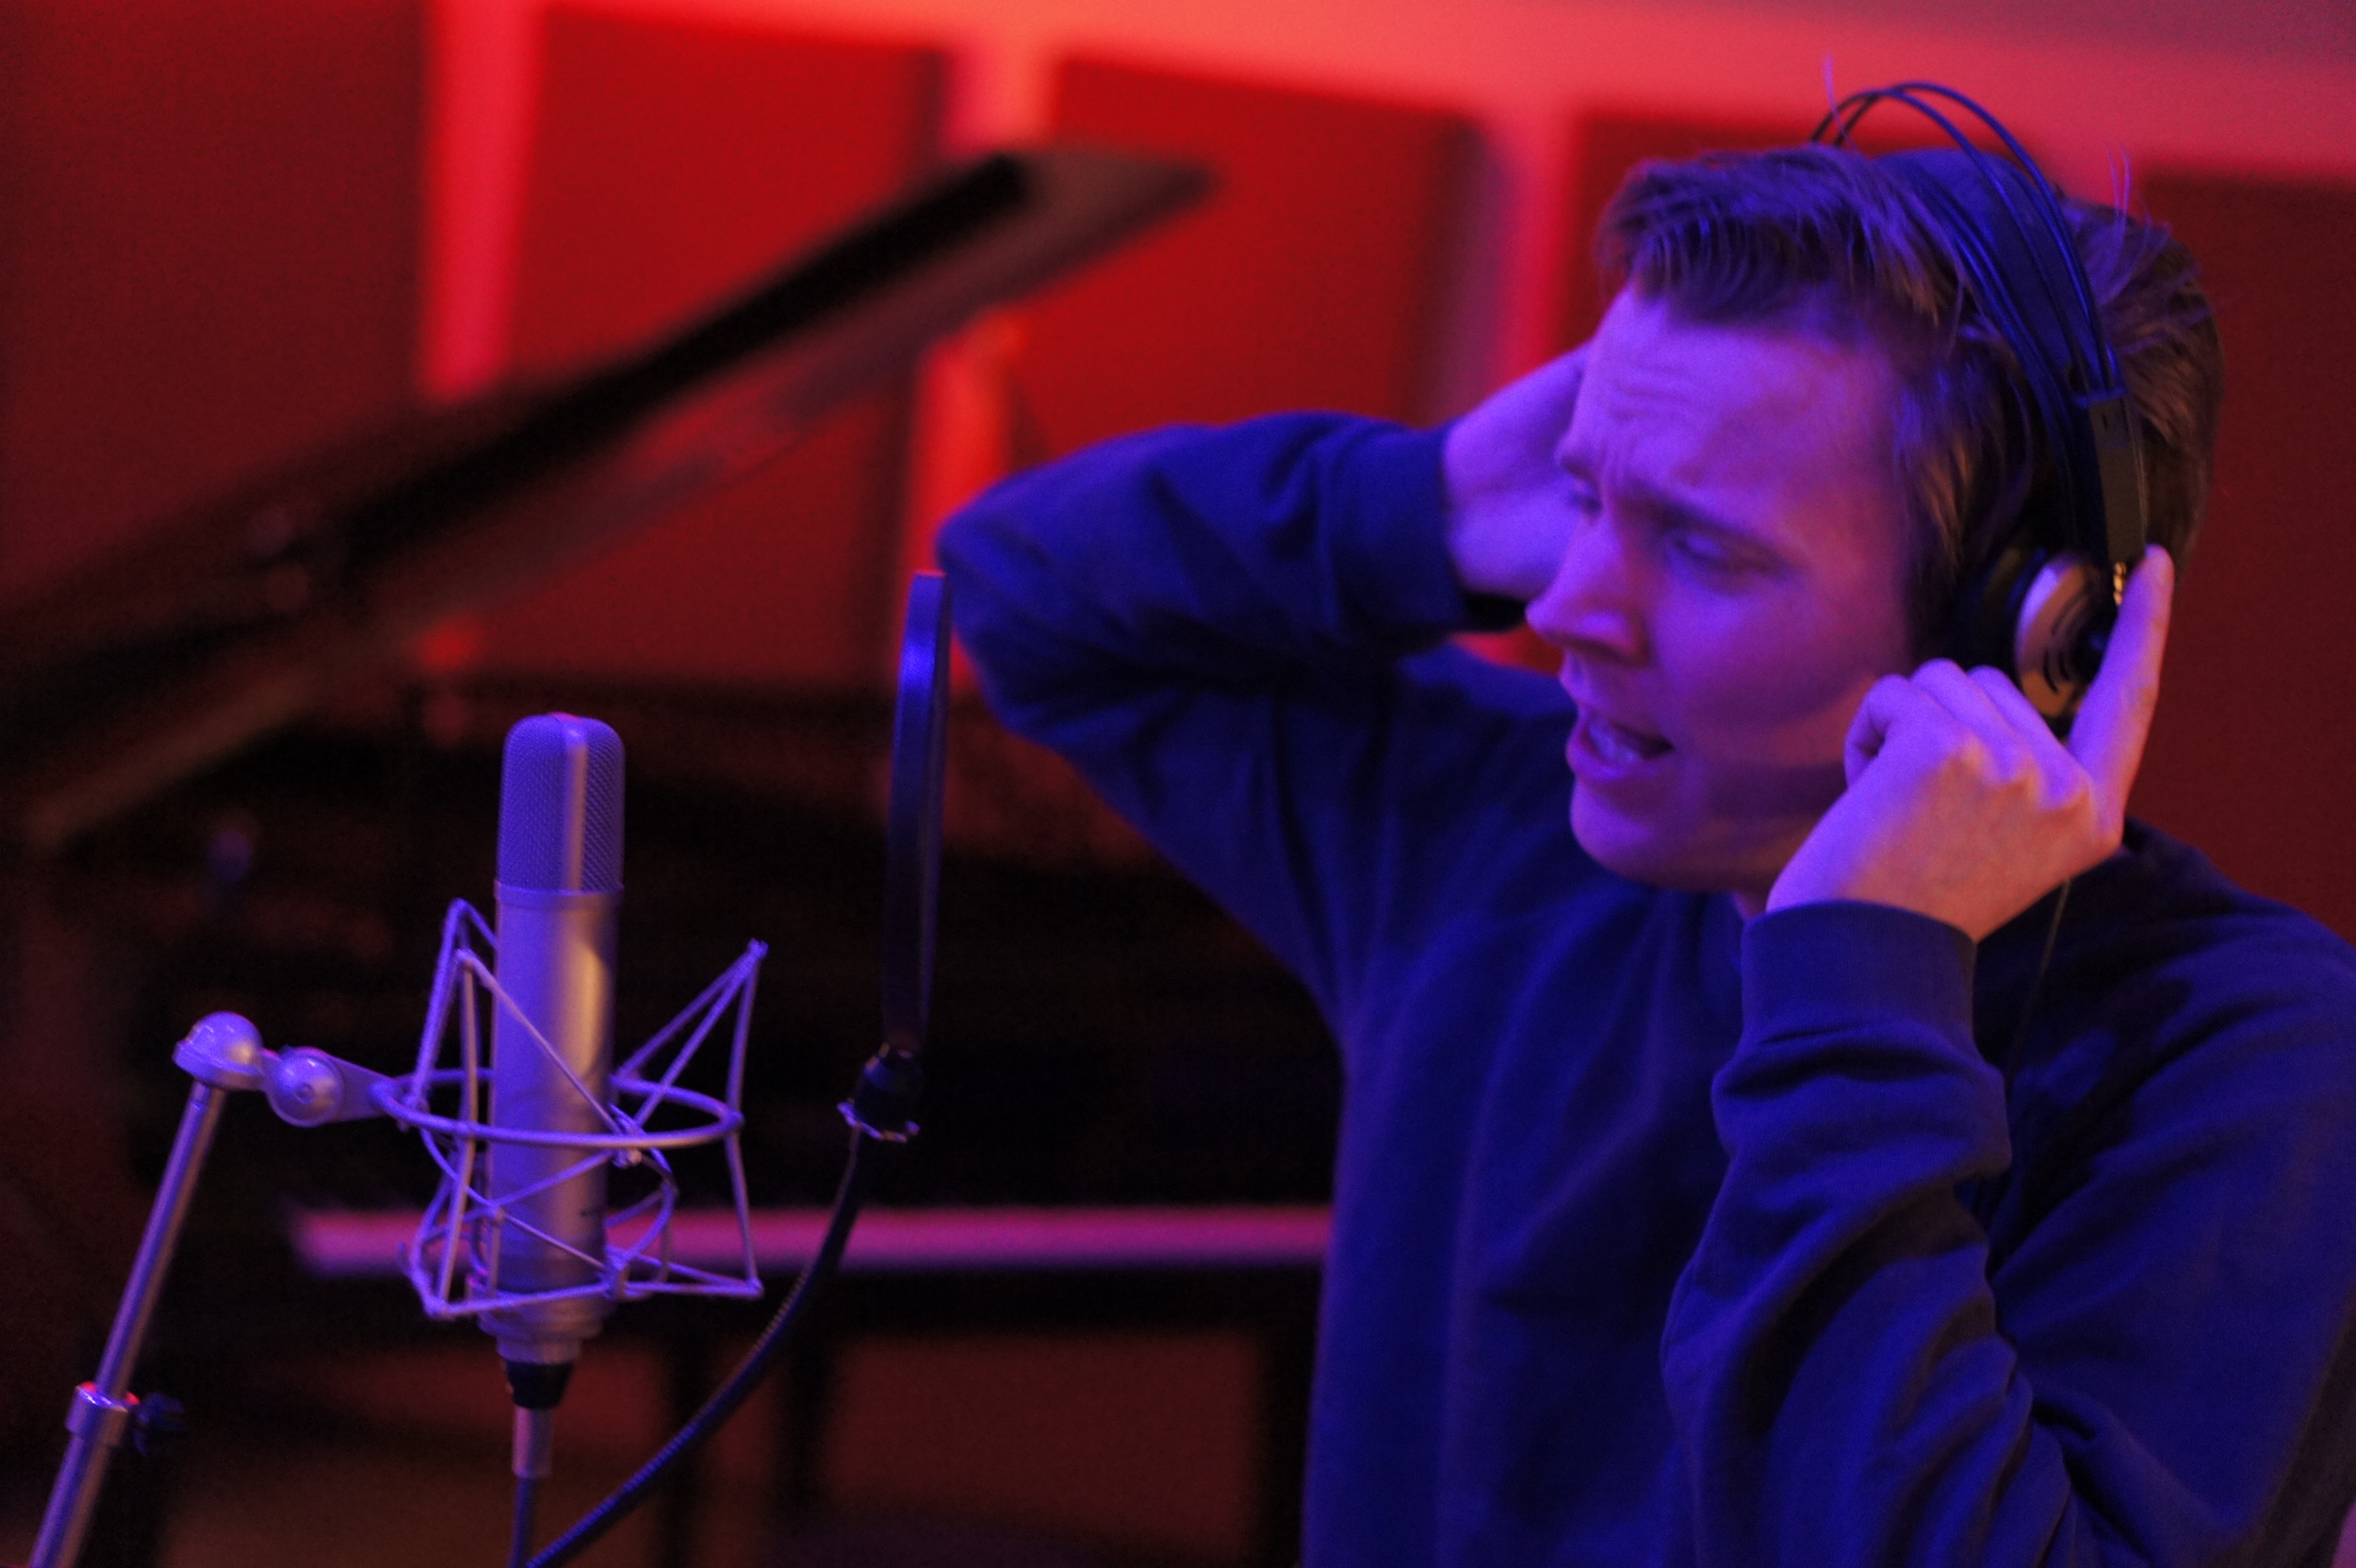 Geir Satre Remember Sessions Vocals